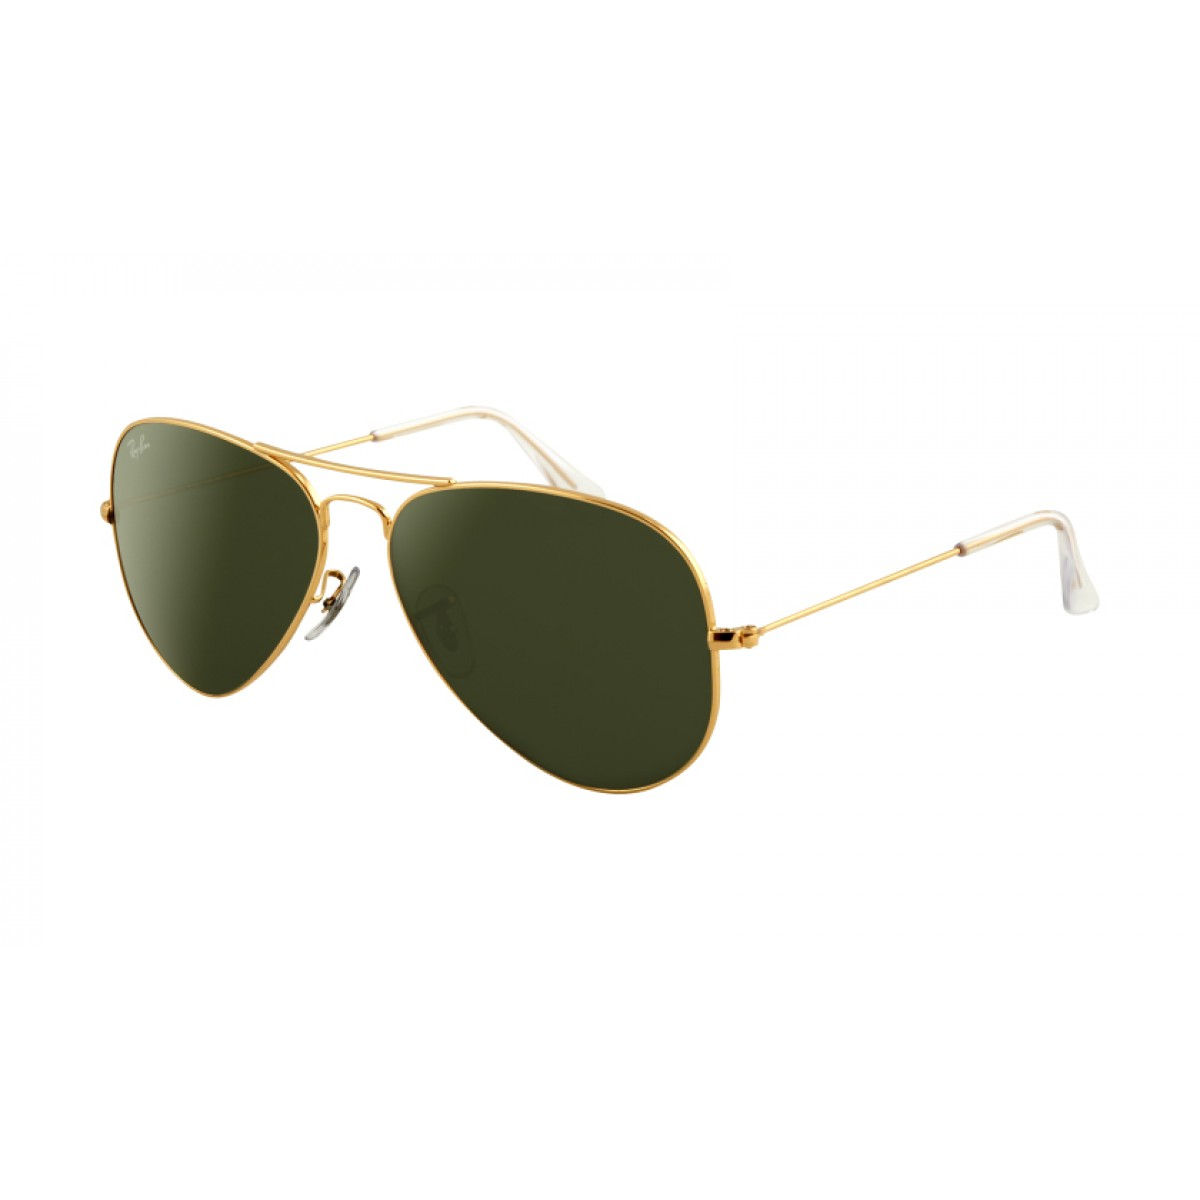 Oversized Gold Frame Sunglasses : Stylo Golden Frame Aviators Sunglasses (Golden Green)